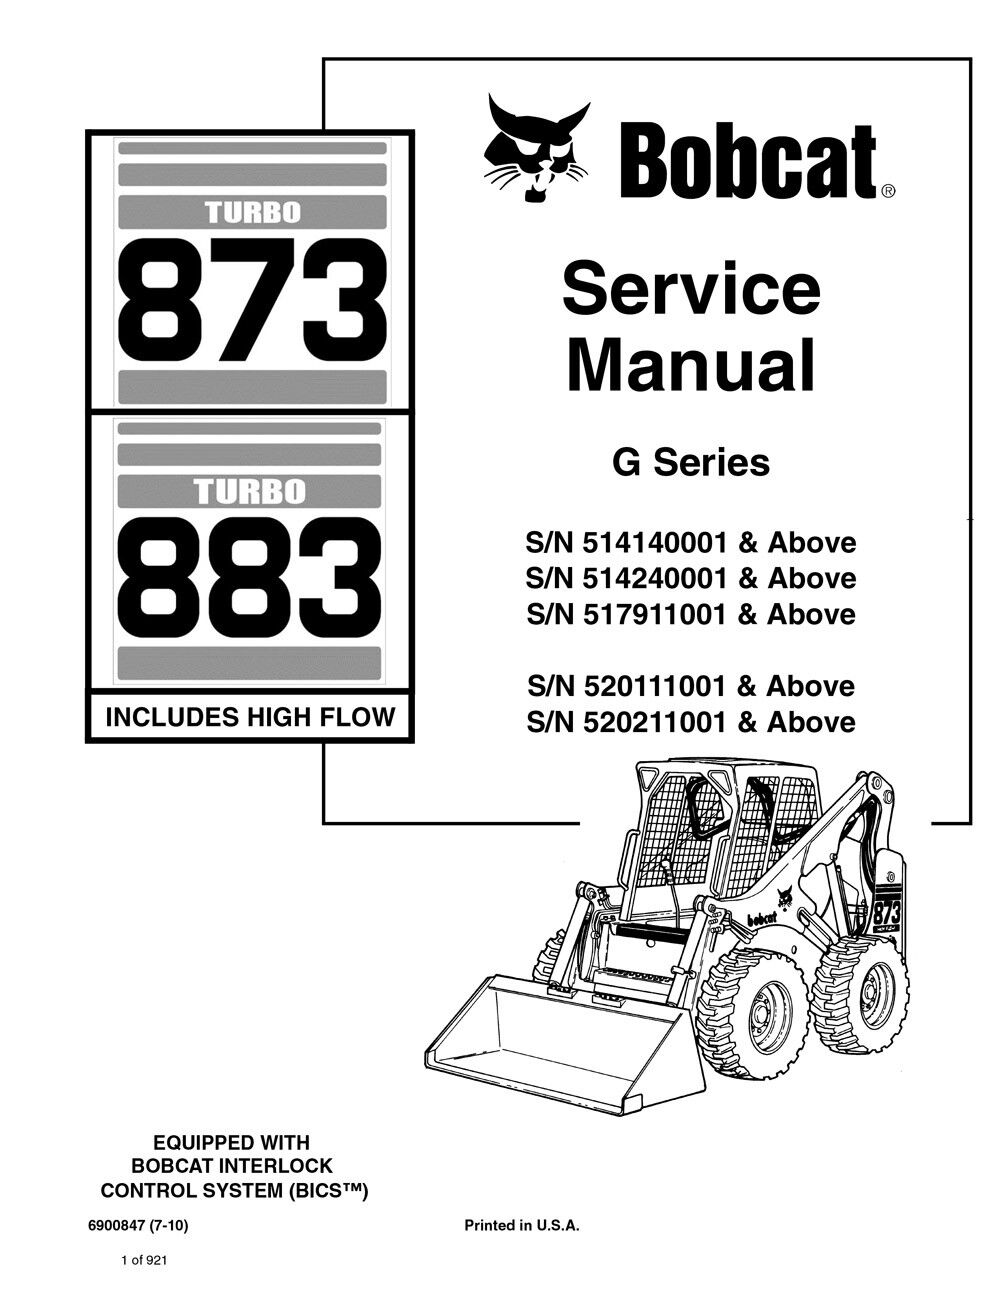 Bobcat 873 G-series Turbo Skid Steer Loader Service Manual 920 Pgs 6900847  | eBay